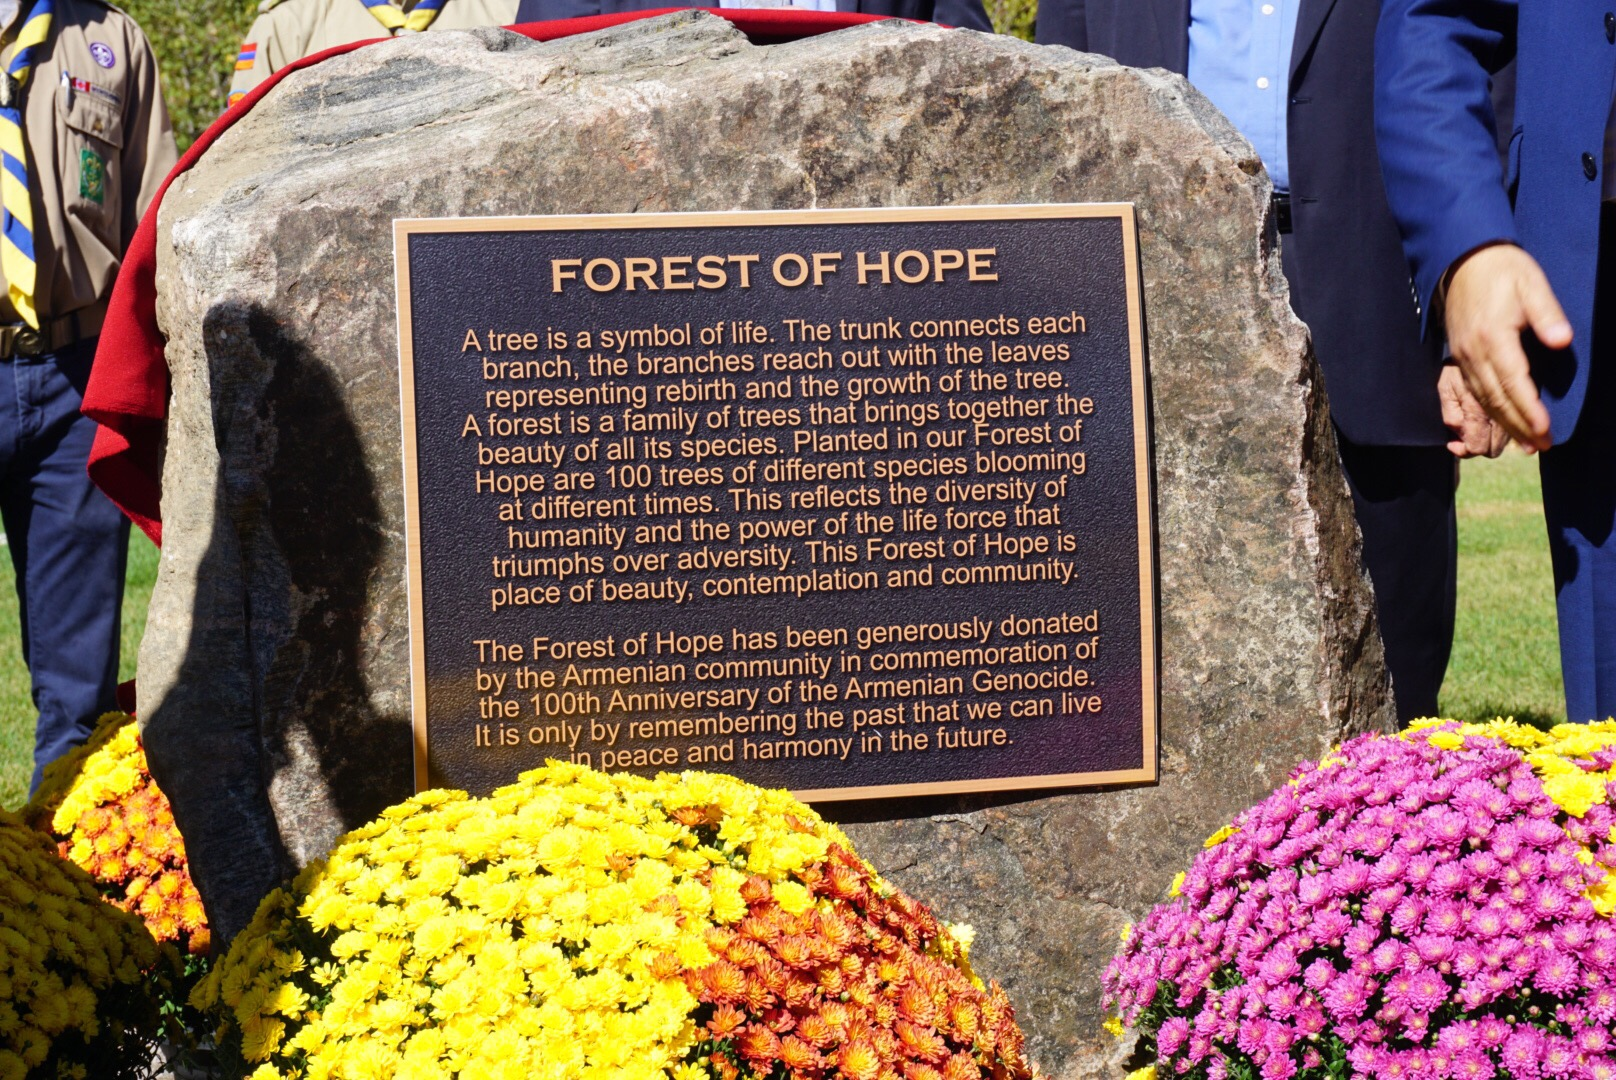 Image-3-Plaque-at-the-centre-of-the-Forest-of-Hope.jpg